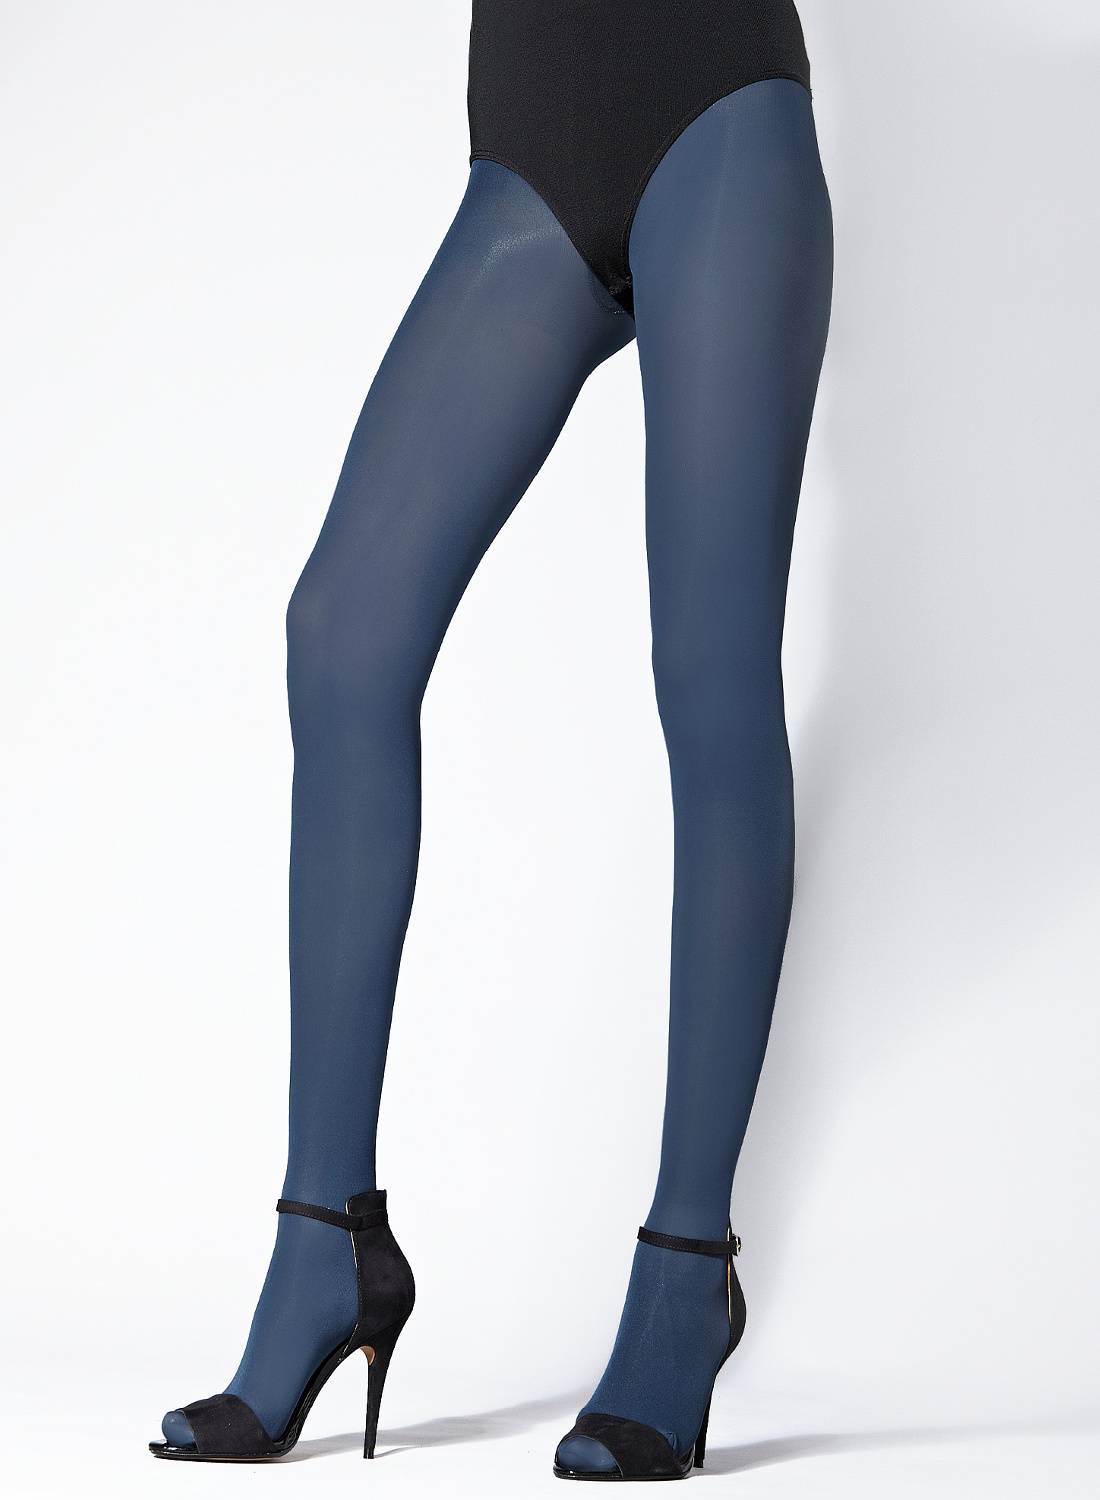 Samburu Eva 70 opaque tights